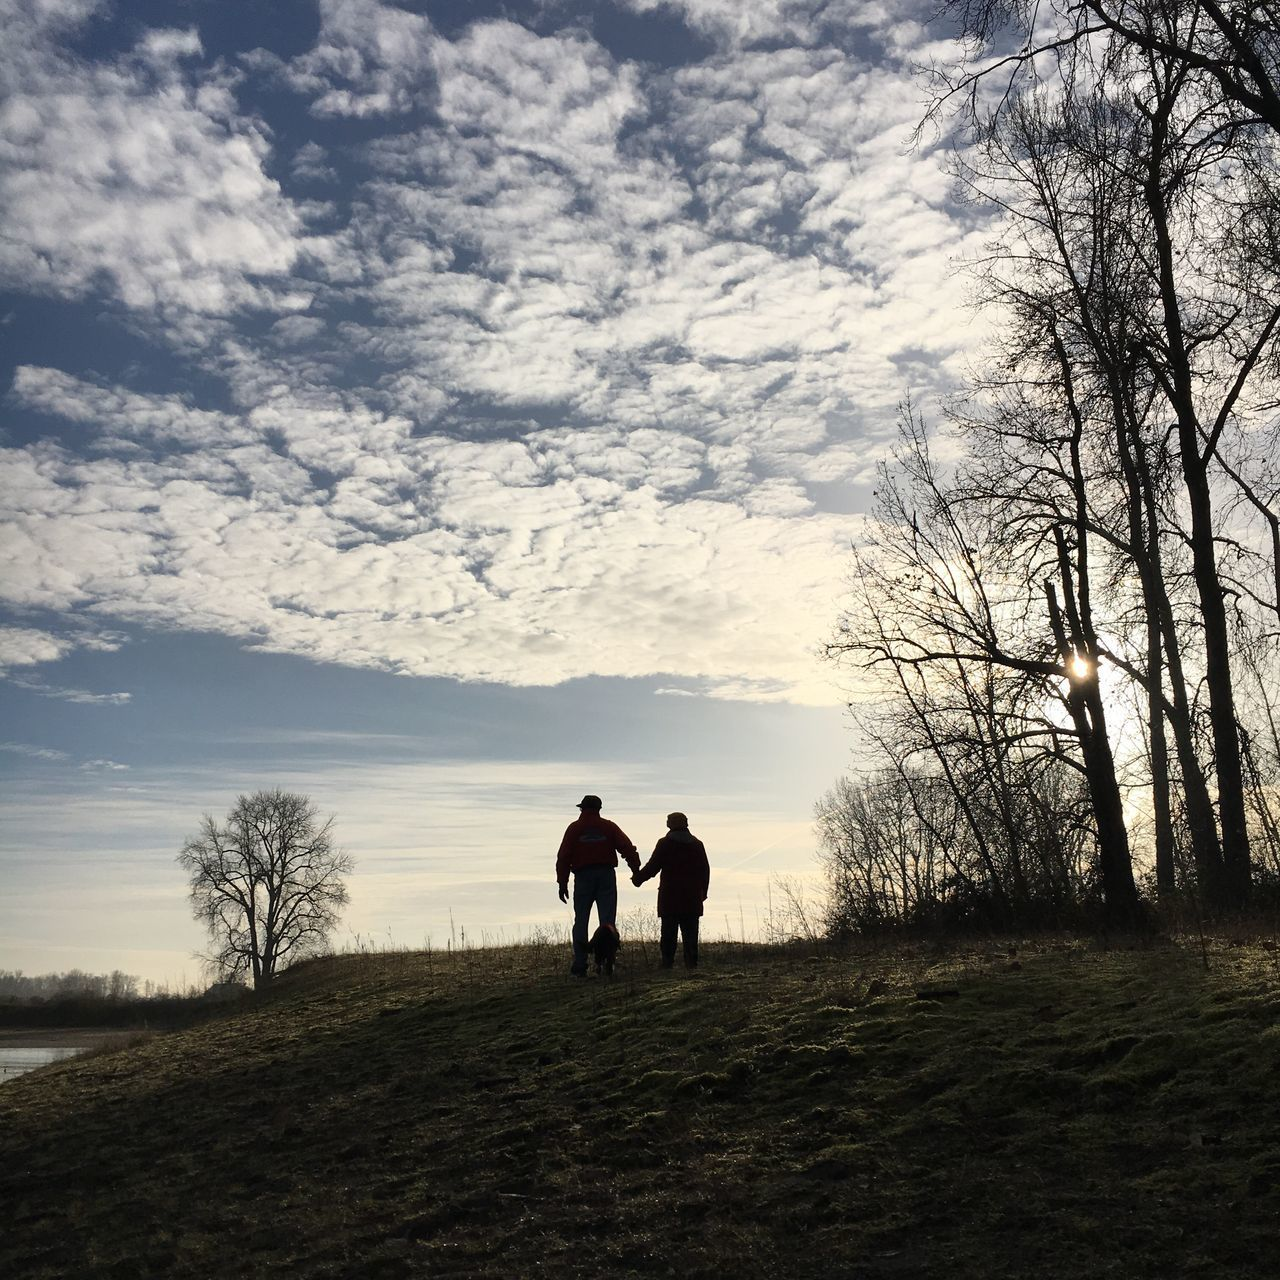 real people, togetherness, two people, walking, men, silhouette, full length, nature, sky, rear view, cloud - sky, lifestyles, beauty in nature, outdoors, tree, bare tree, women, friendship, day, people